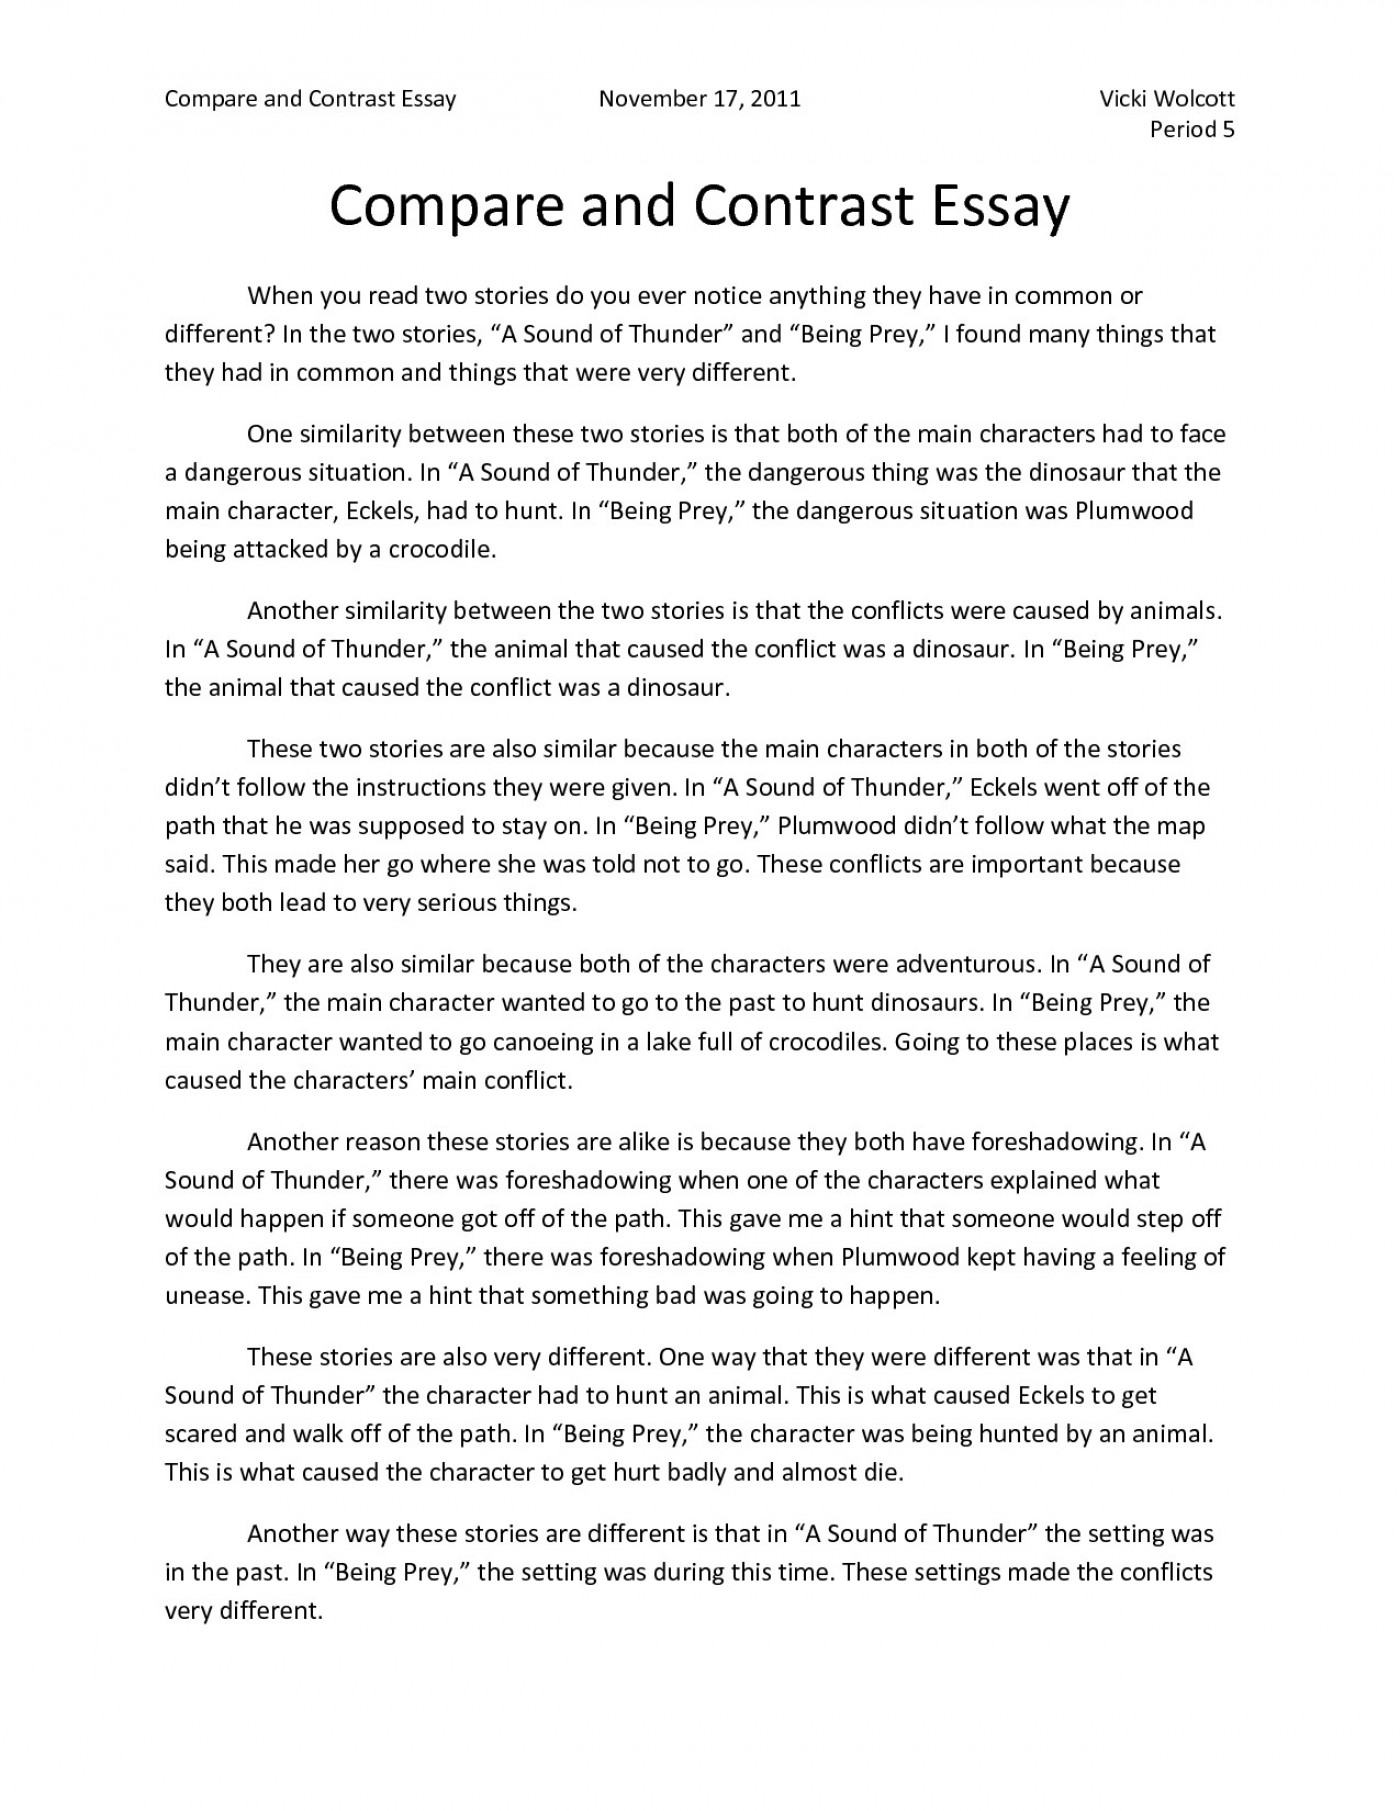 006 Comparing And Contrasting Essay Example Satire Examples Of Comparison Contrast Essays Com How To Write Outstanding A Compare Block Format Thesis Introduction Paragraph 1400